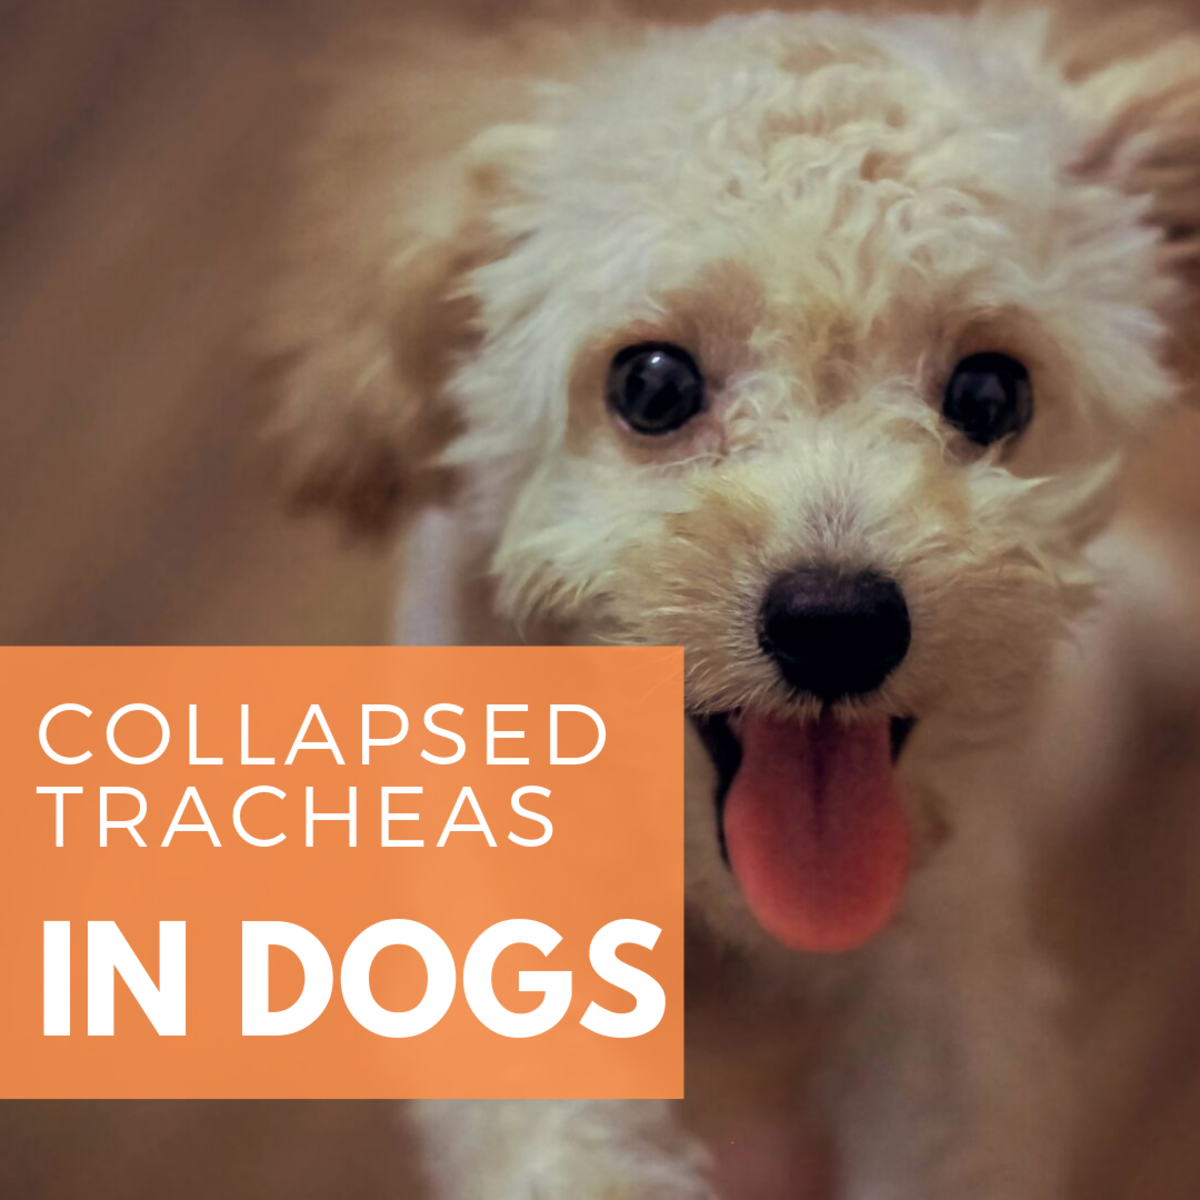 Collapsed Trachea in Dogs